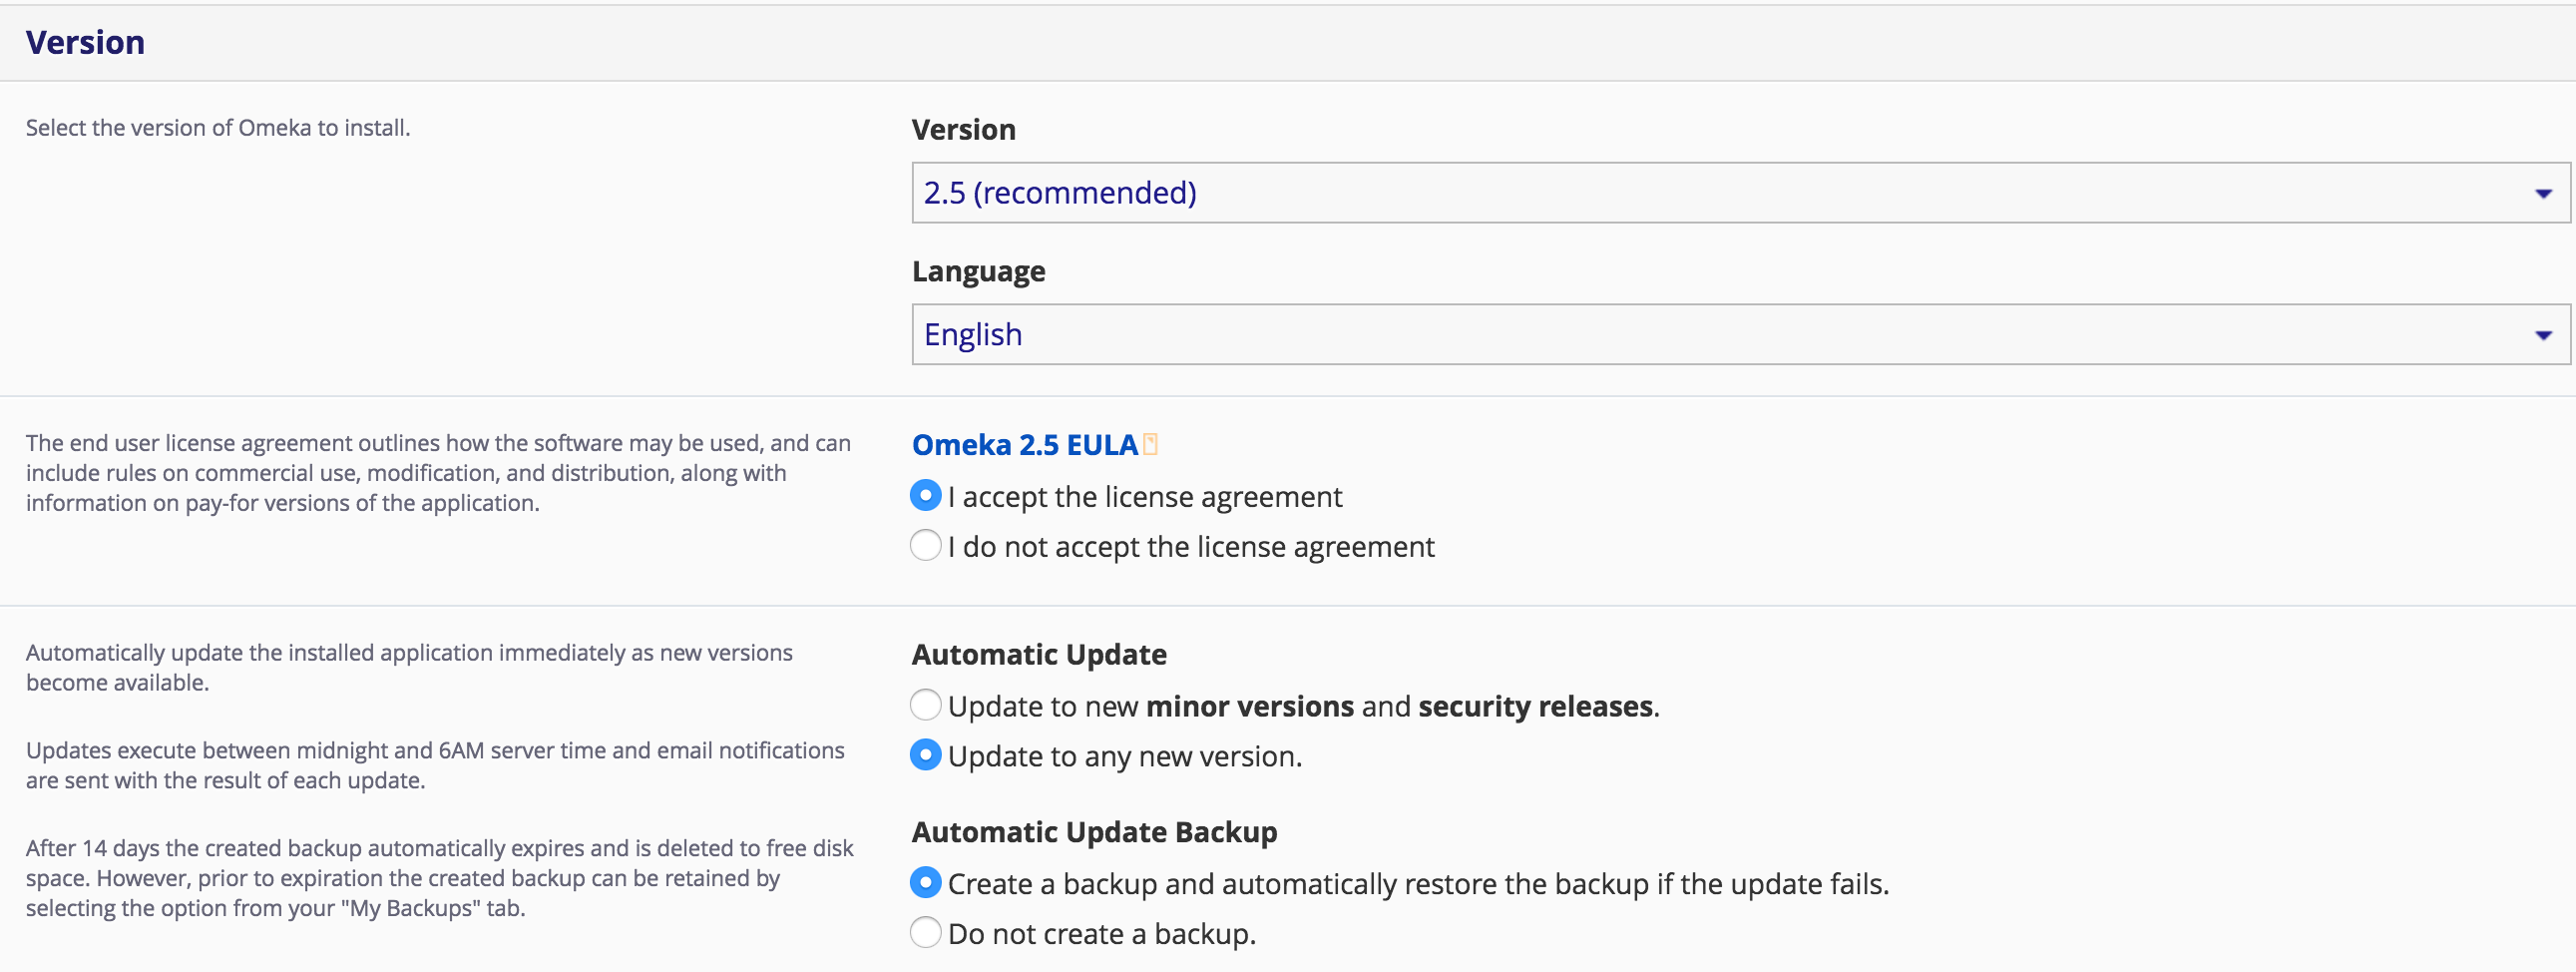 Omeka install accept EULA and defaults